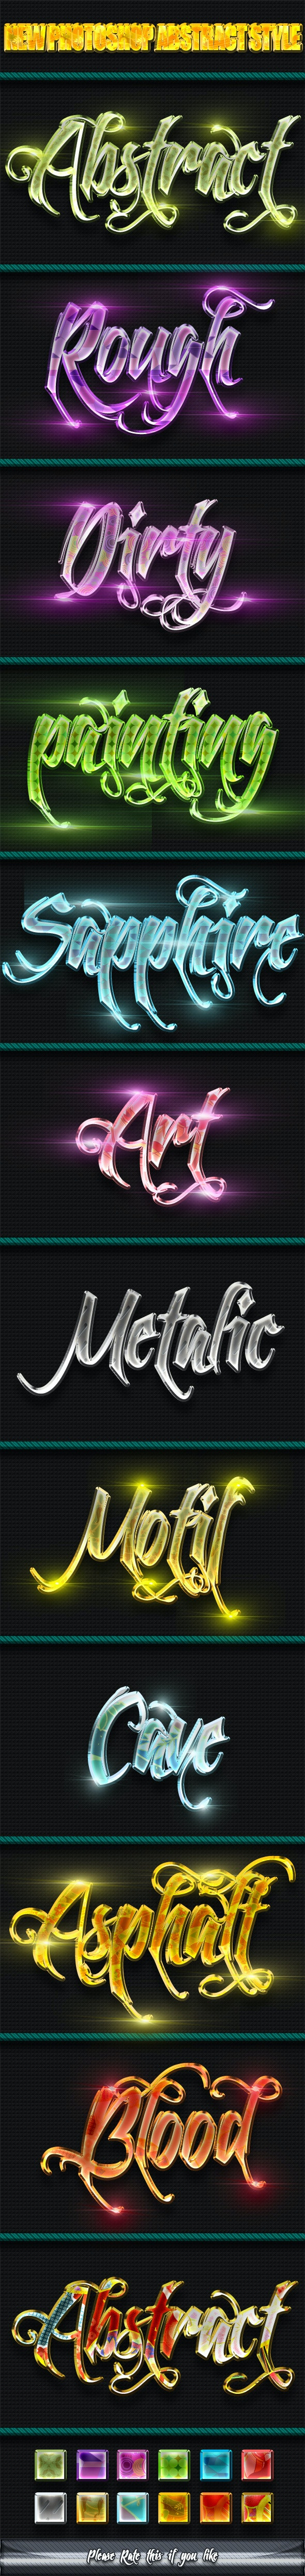 New Photoshop Abstract Styles - Text Effects Styles